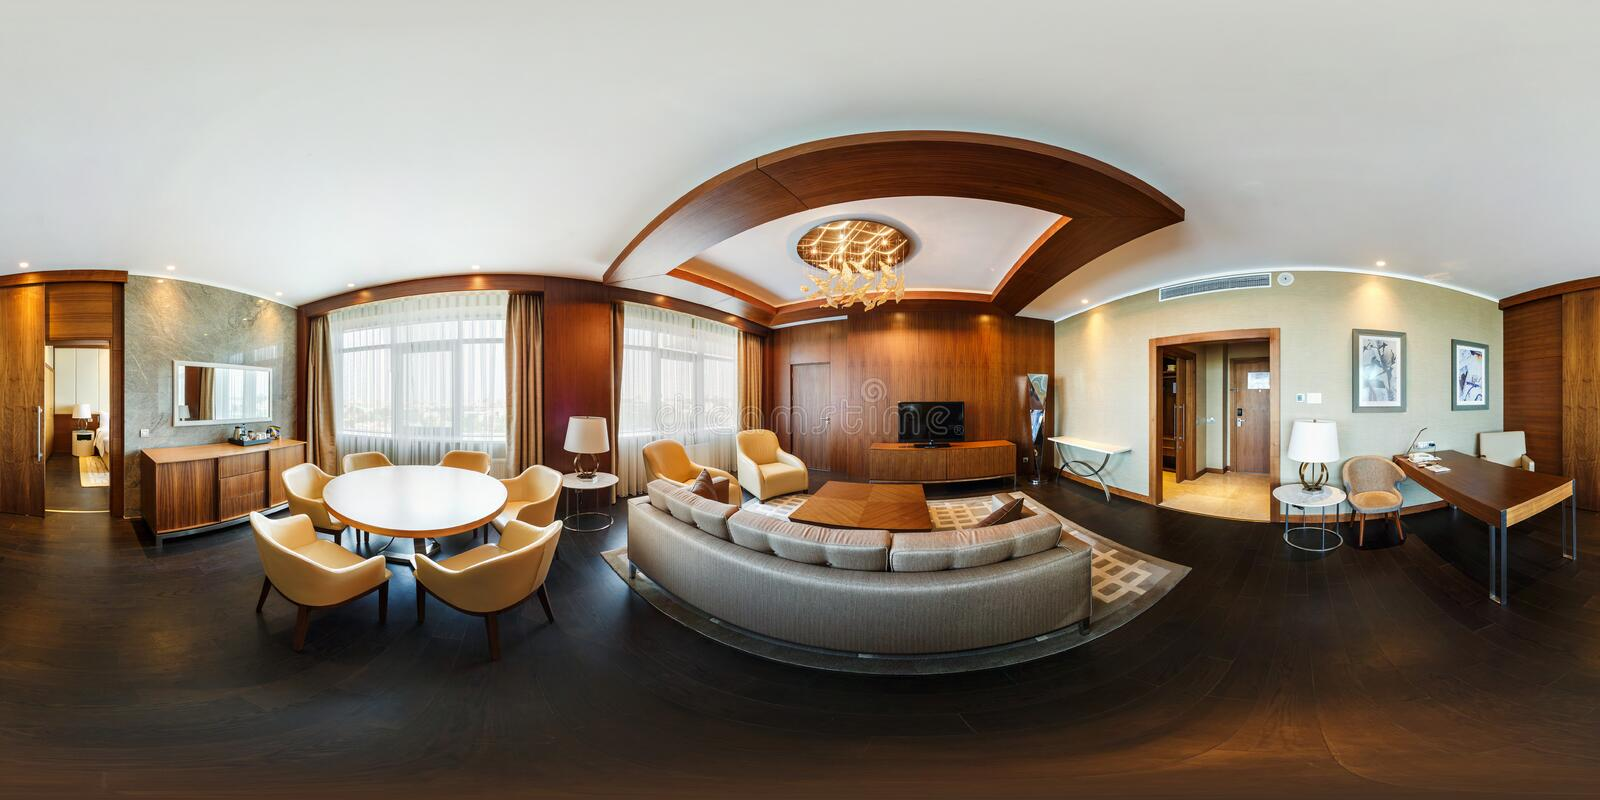 MINSK, BELARUS - MARCH, 2017: Full spherical 360 degrees angle view seamless panorama interior vip guest room in loft apartment of royalty free stock images